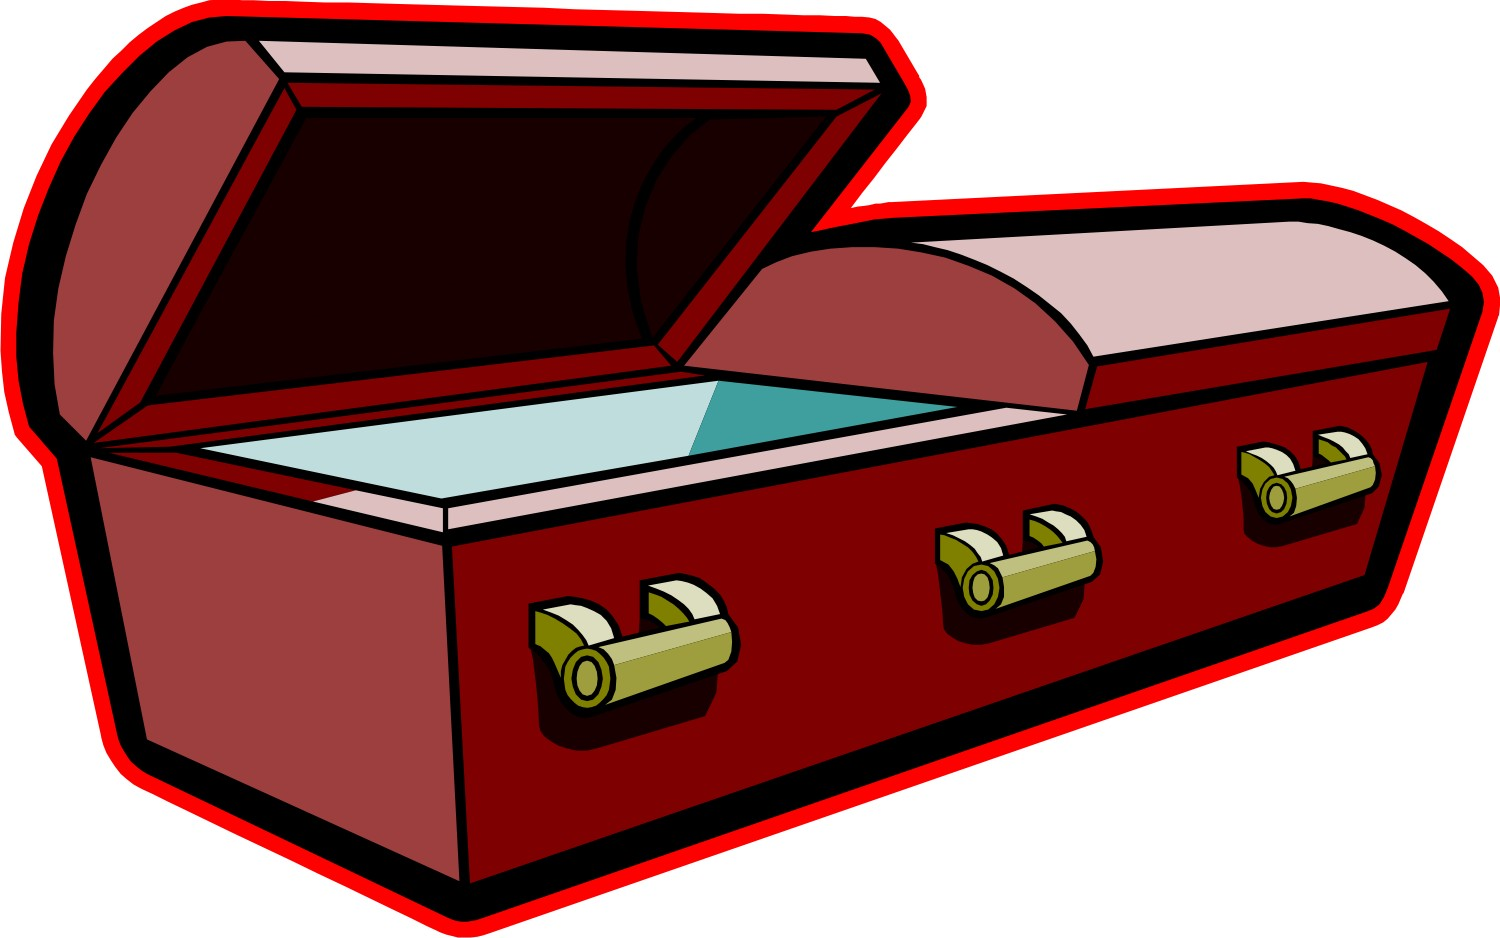 Funeral clipart coffin funeral. Free download best on